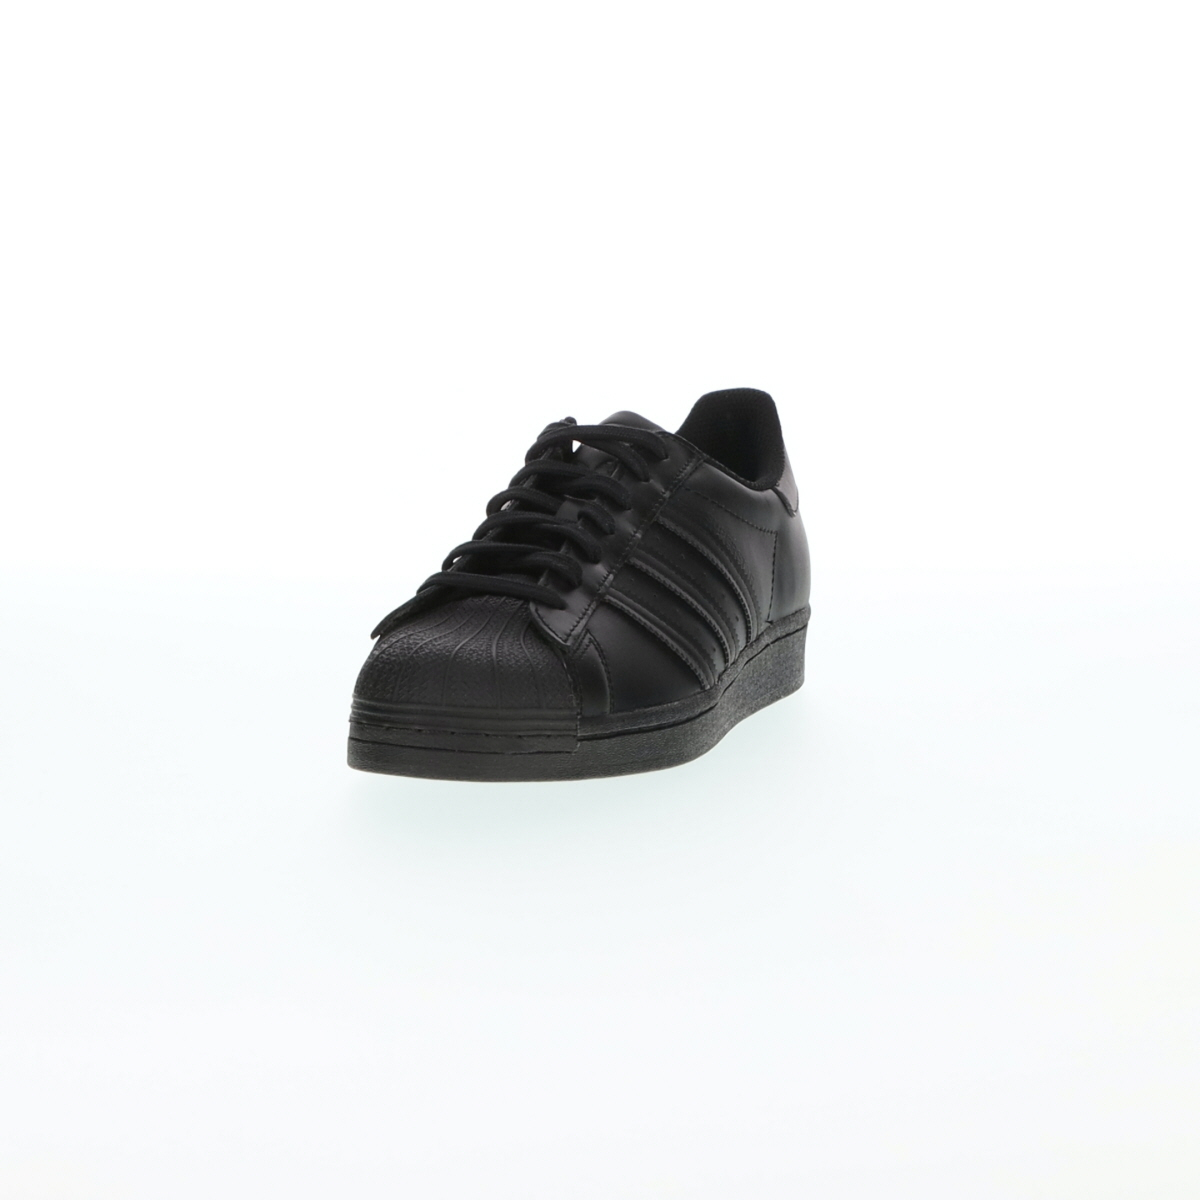 adidas cq2120 shoes outlet store locations florida